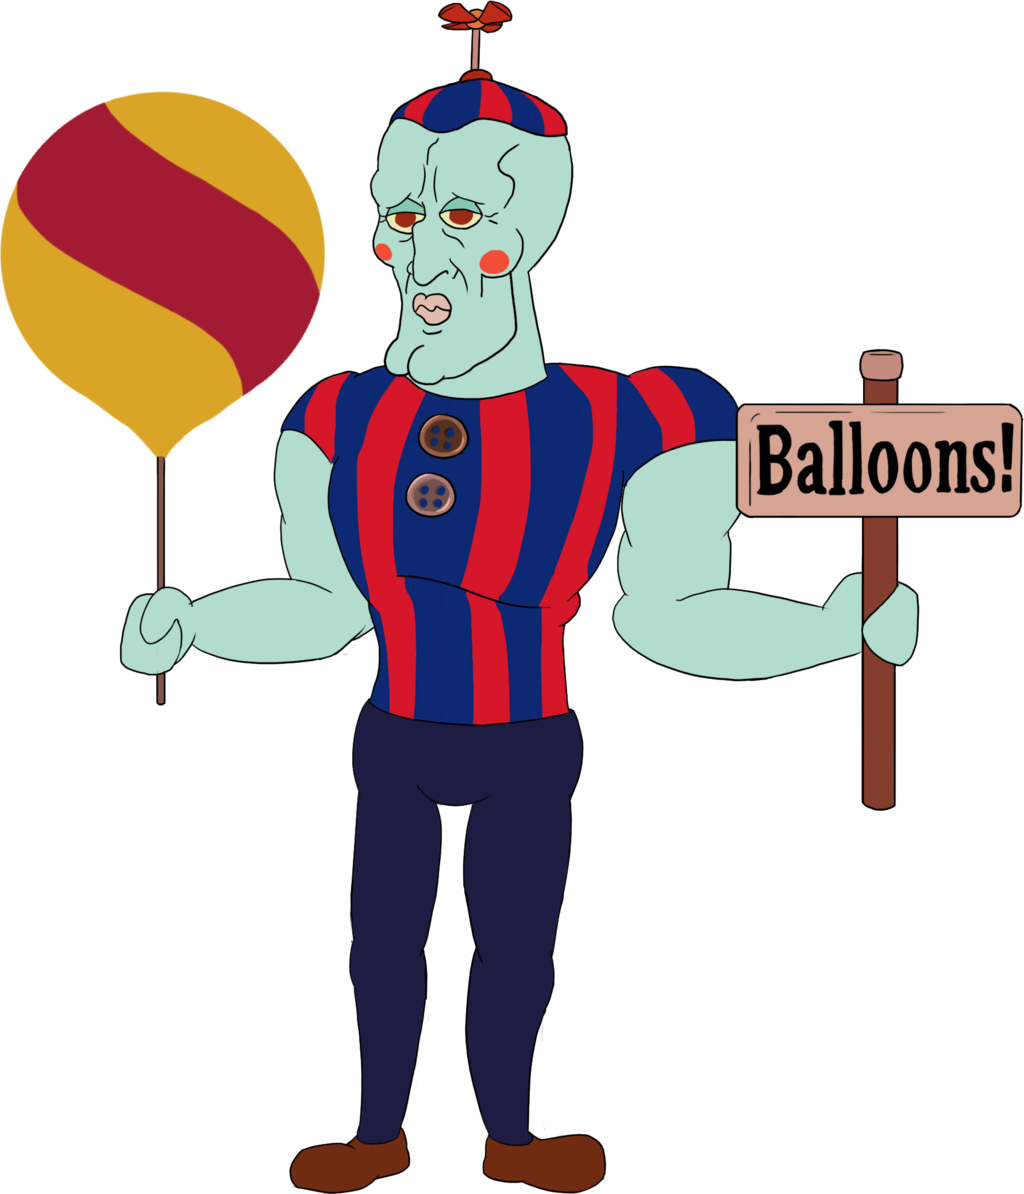 Ballon drawing kid. Marionette in blood baloon